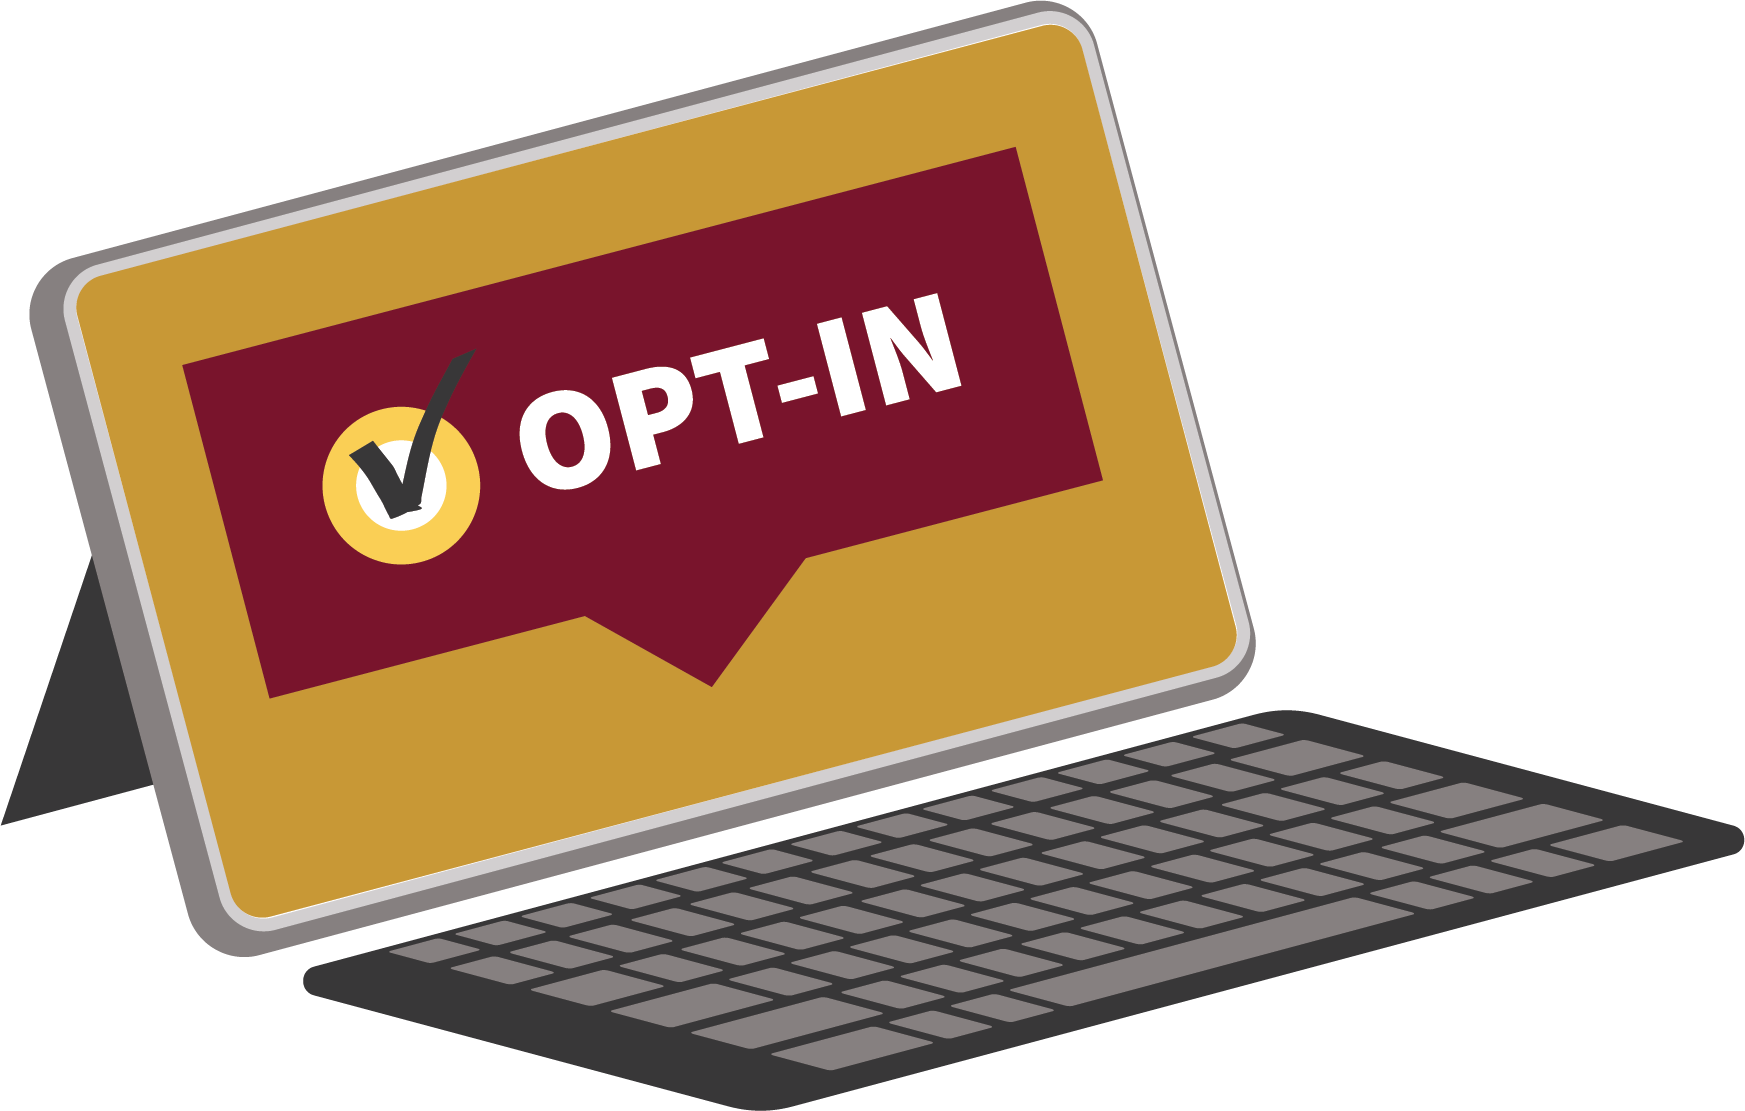 Computer Graphic For Opt In